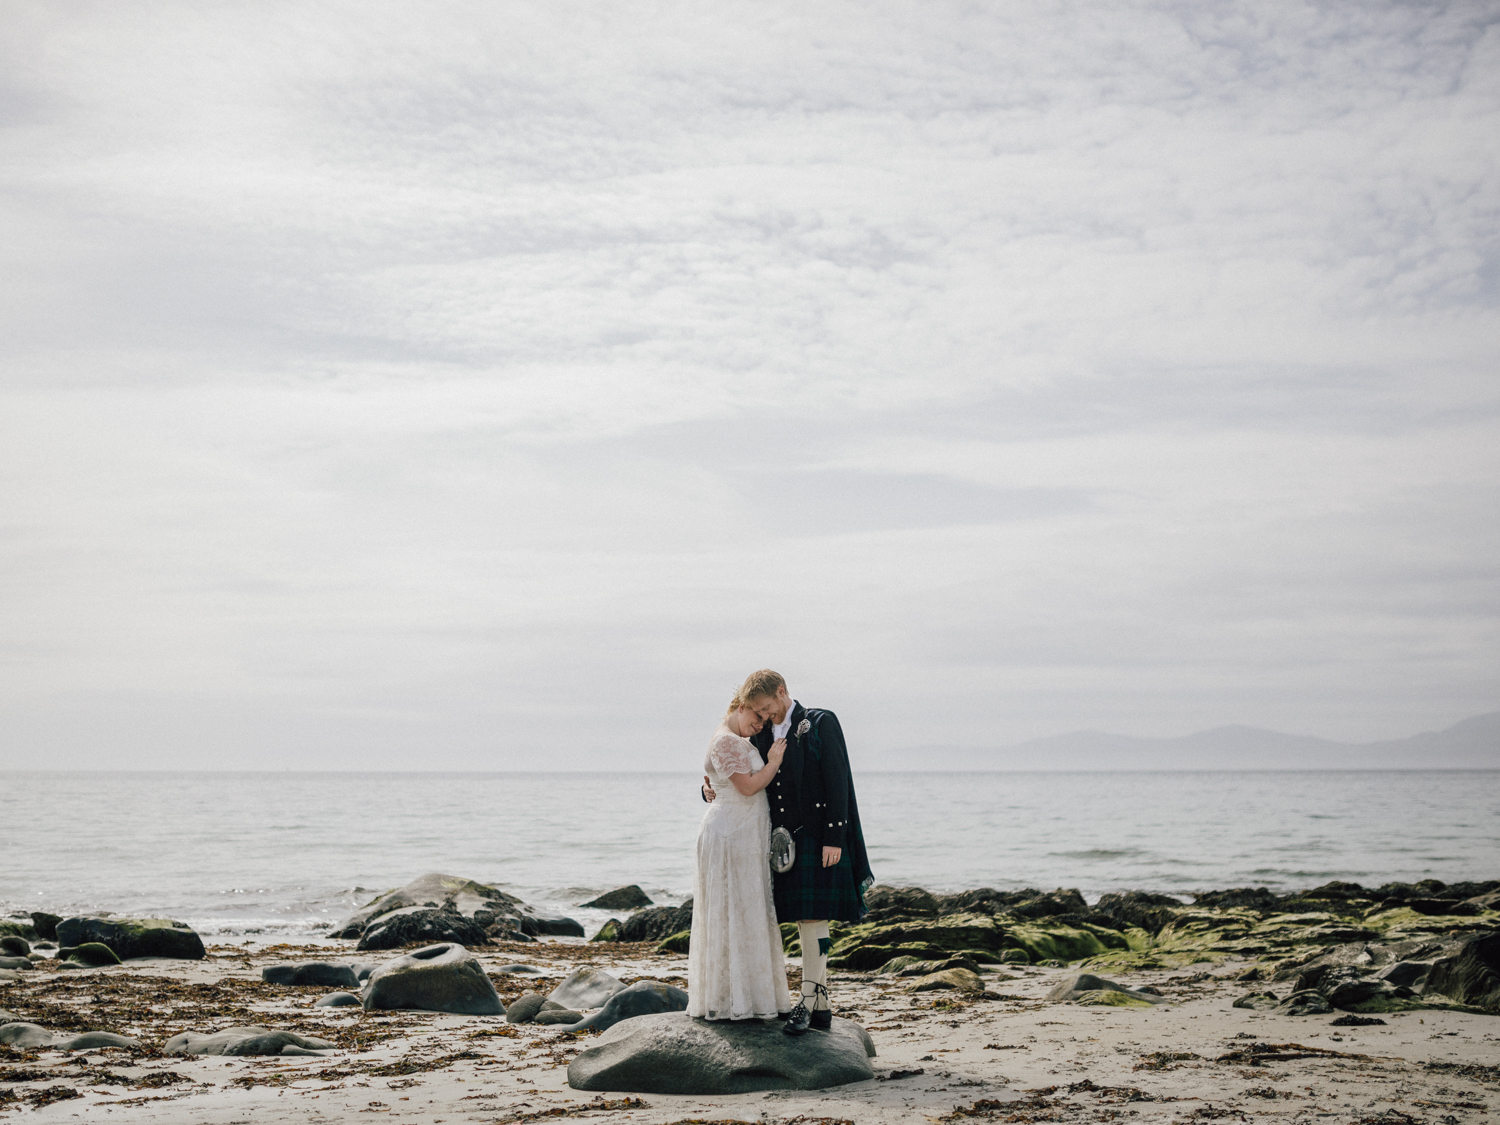 capyture-wedding-photographer-destination-crear-scotland-604-2